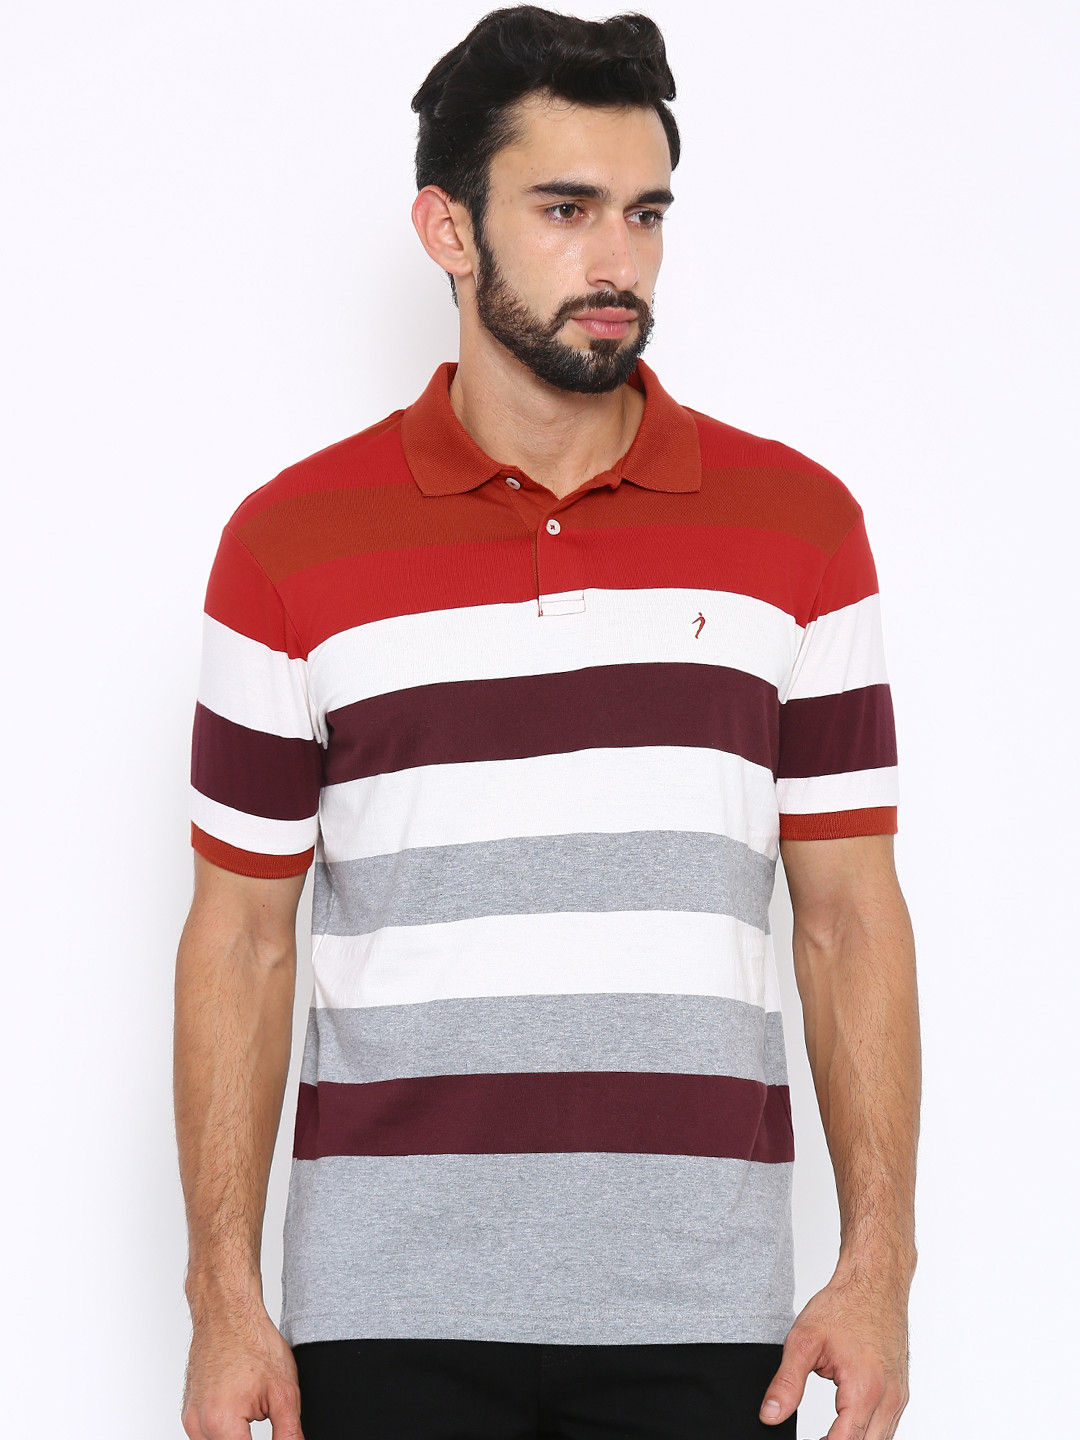 Indian terrain slim fit red white t shirt g3 mts4090 for Slim fit white t shirt